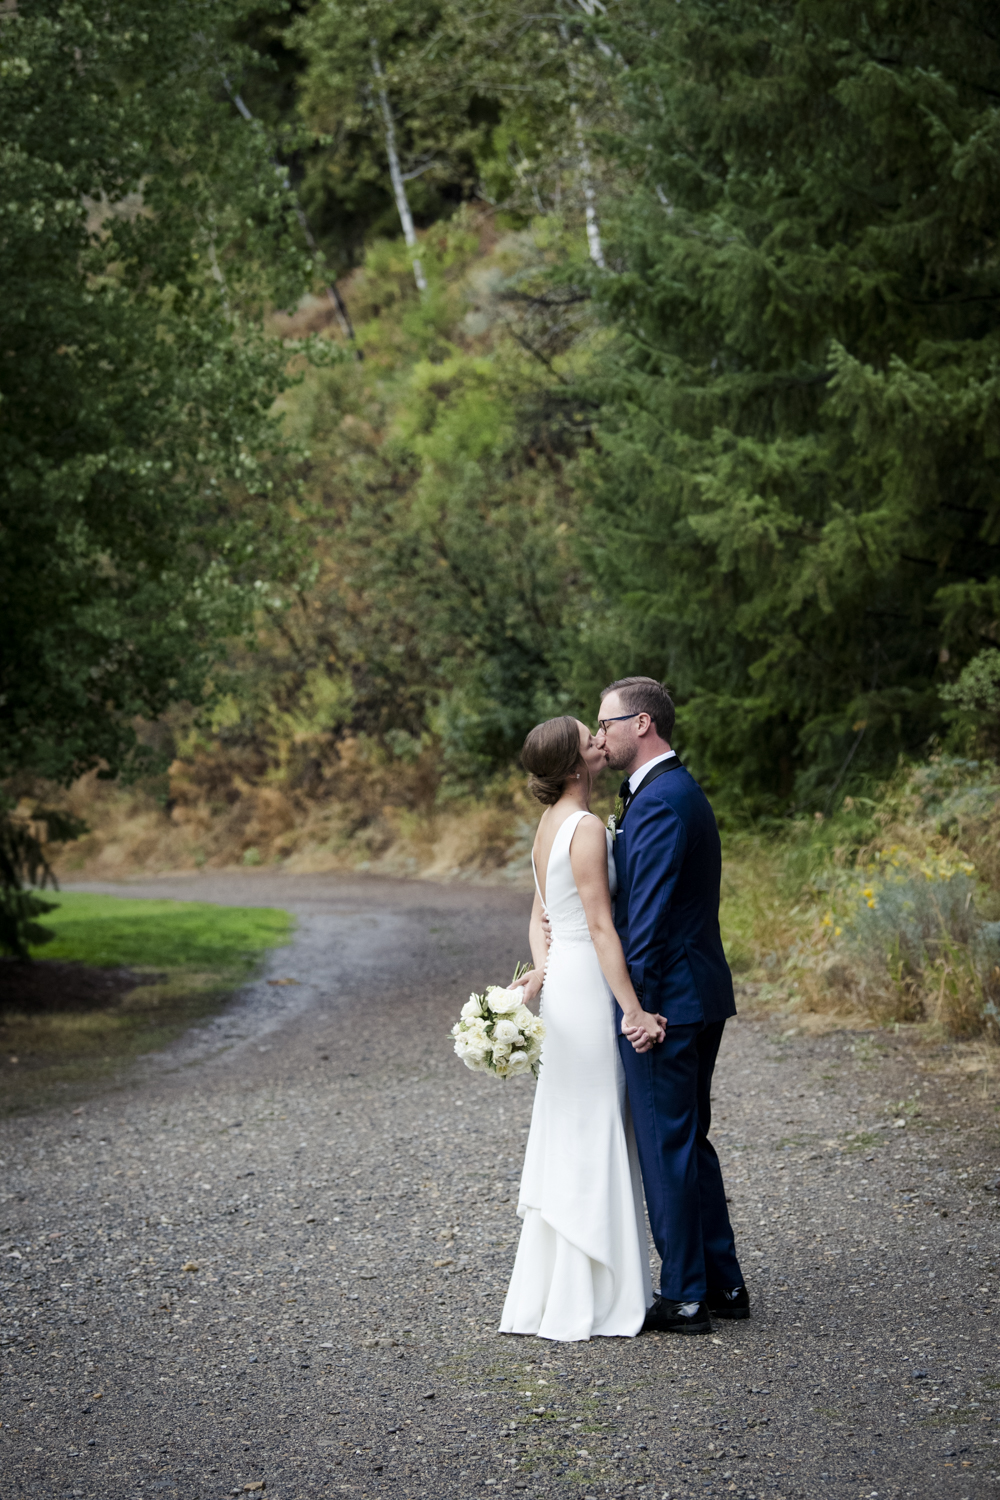 trailcreek_rainy_wedding-048.jpg